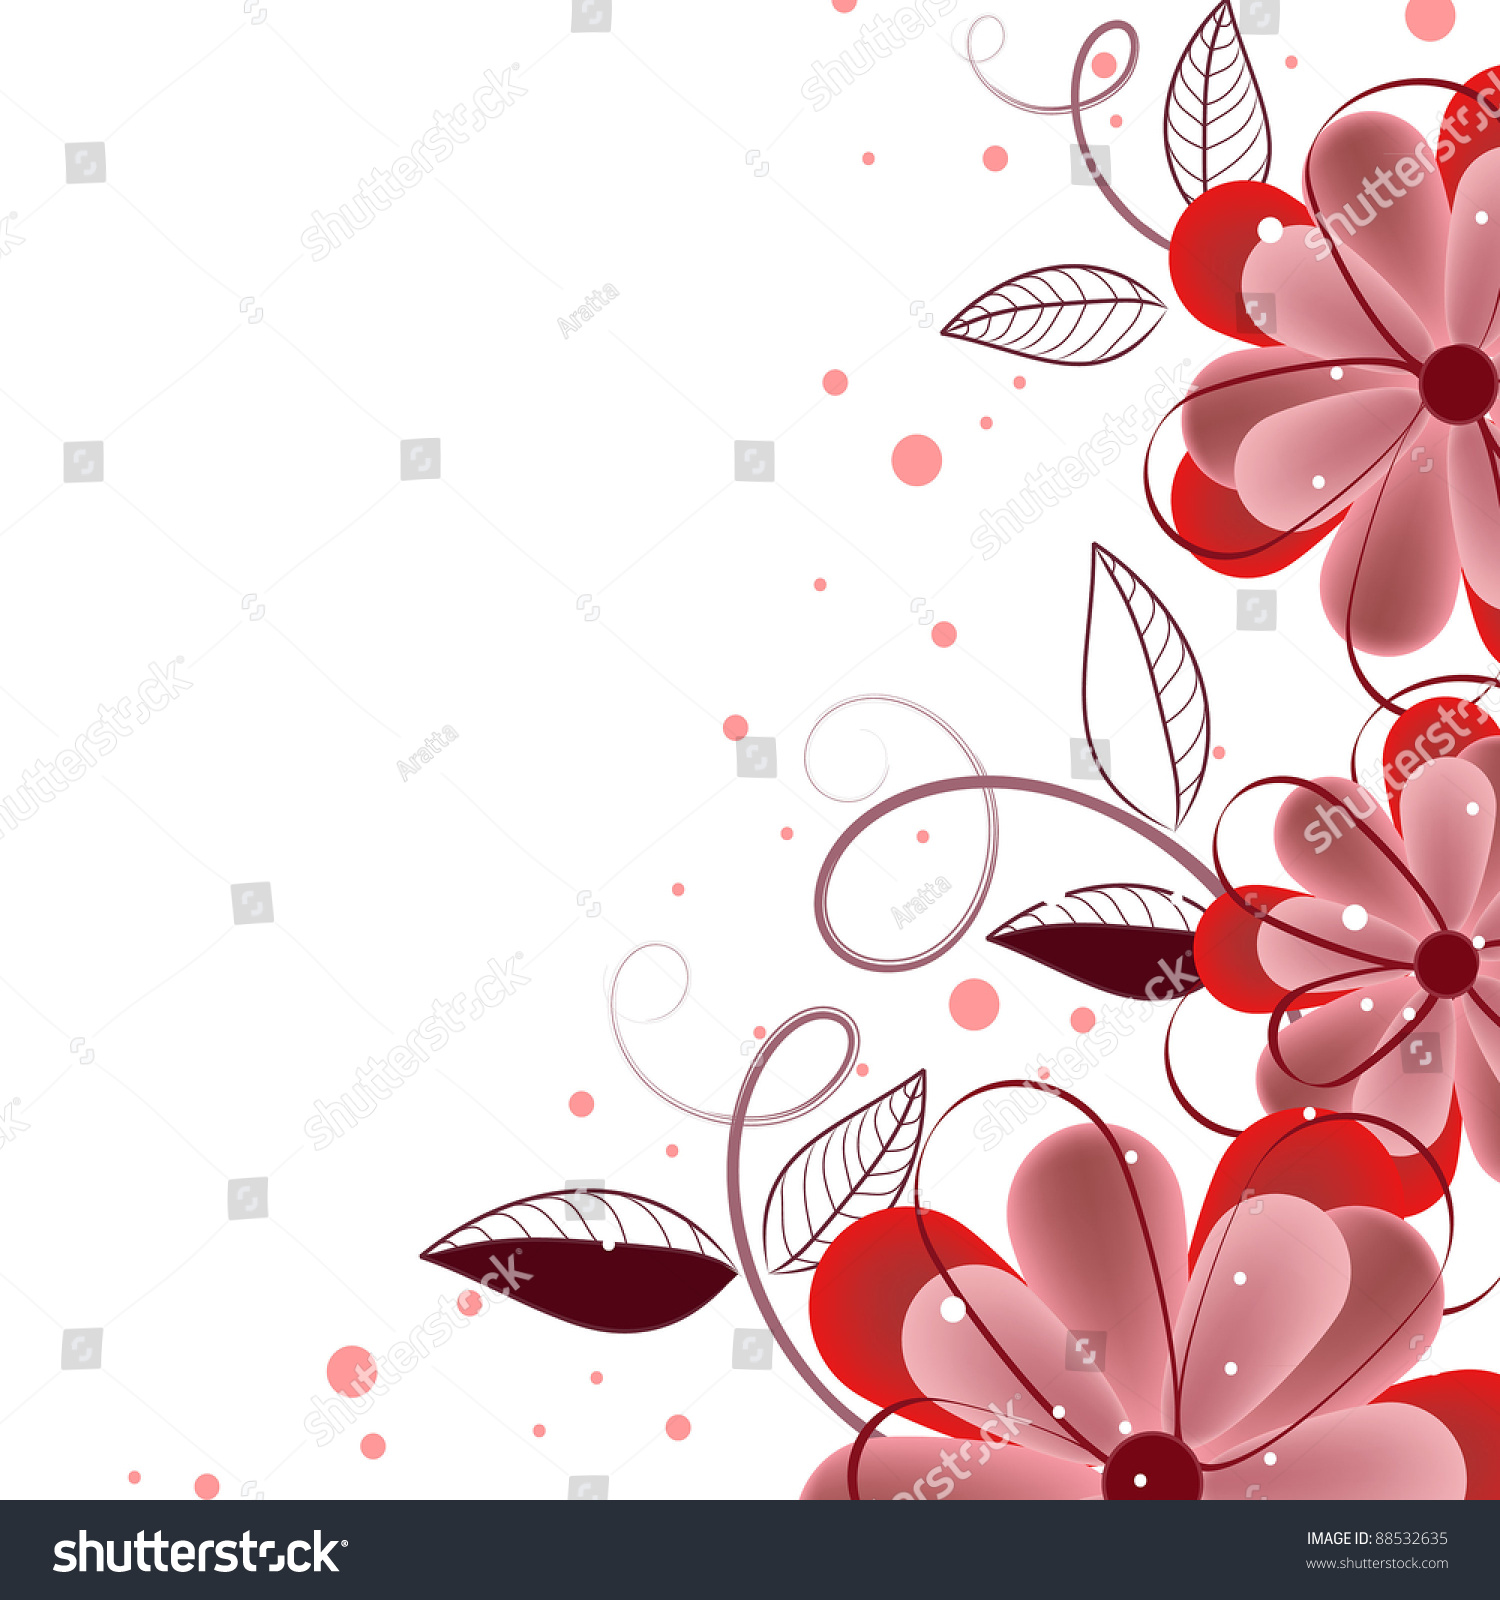 romantic flower invitation  background  greeting card stock vector illustration 88532635